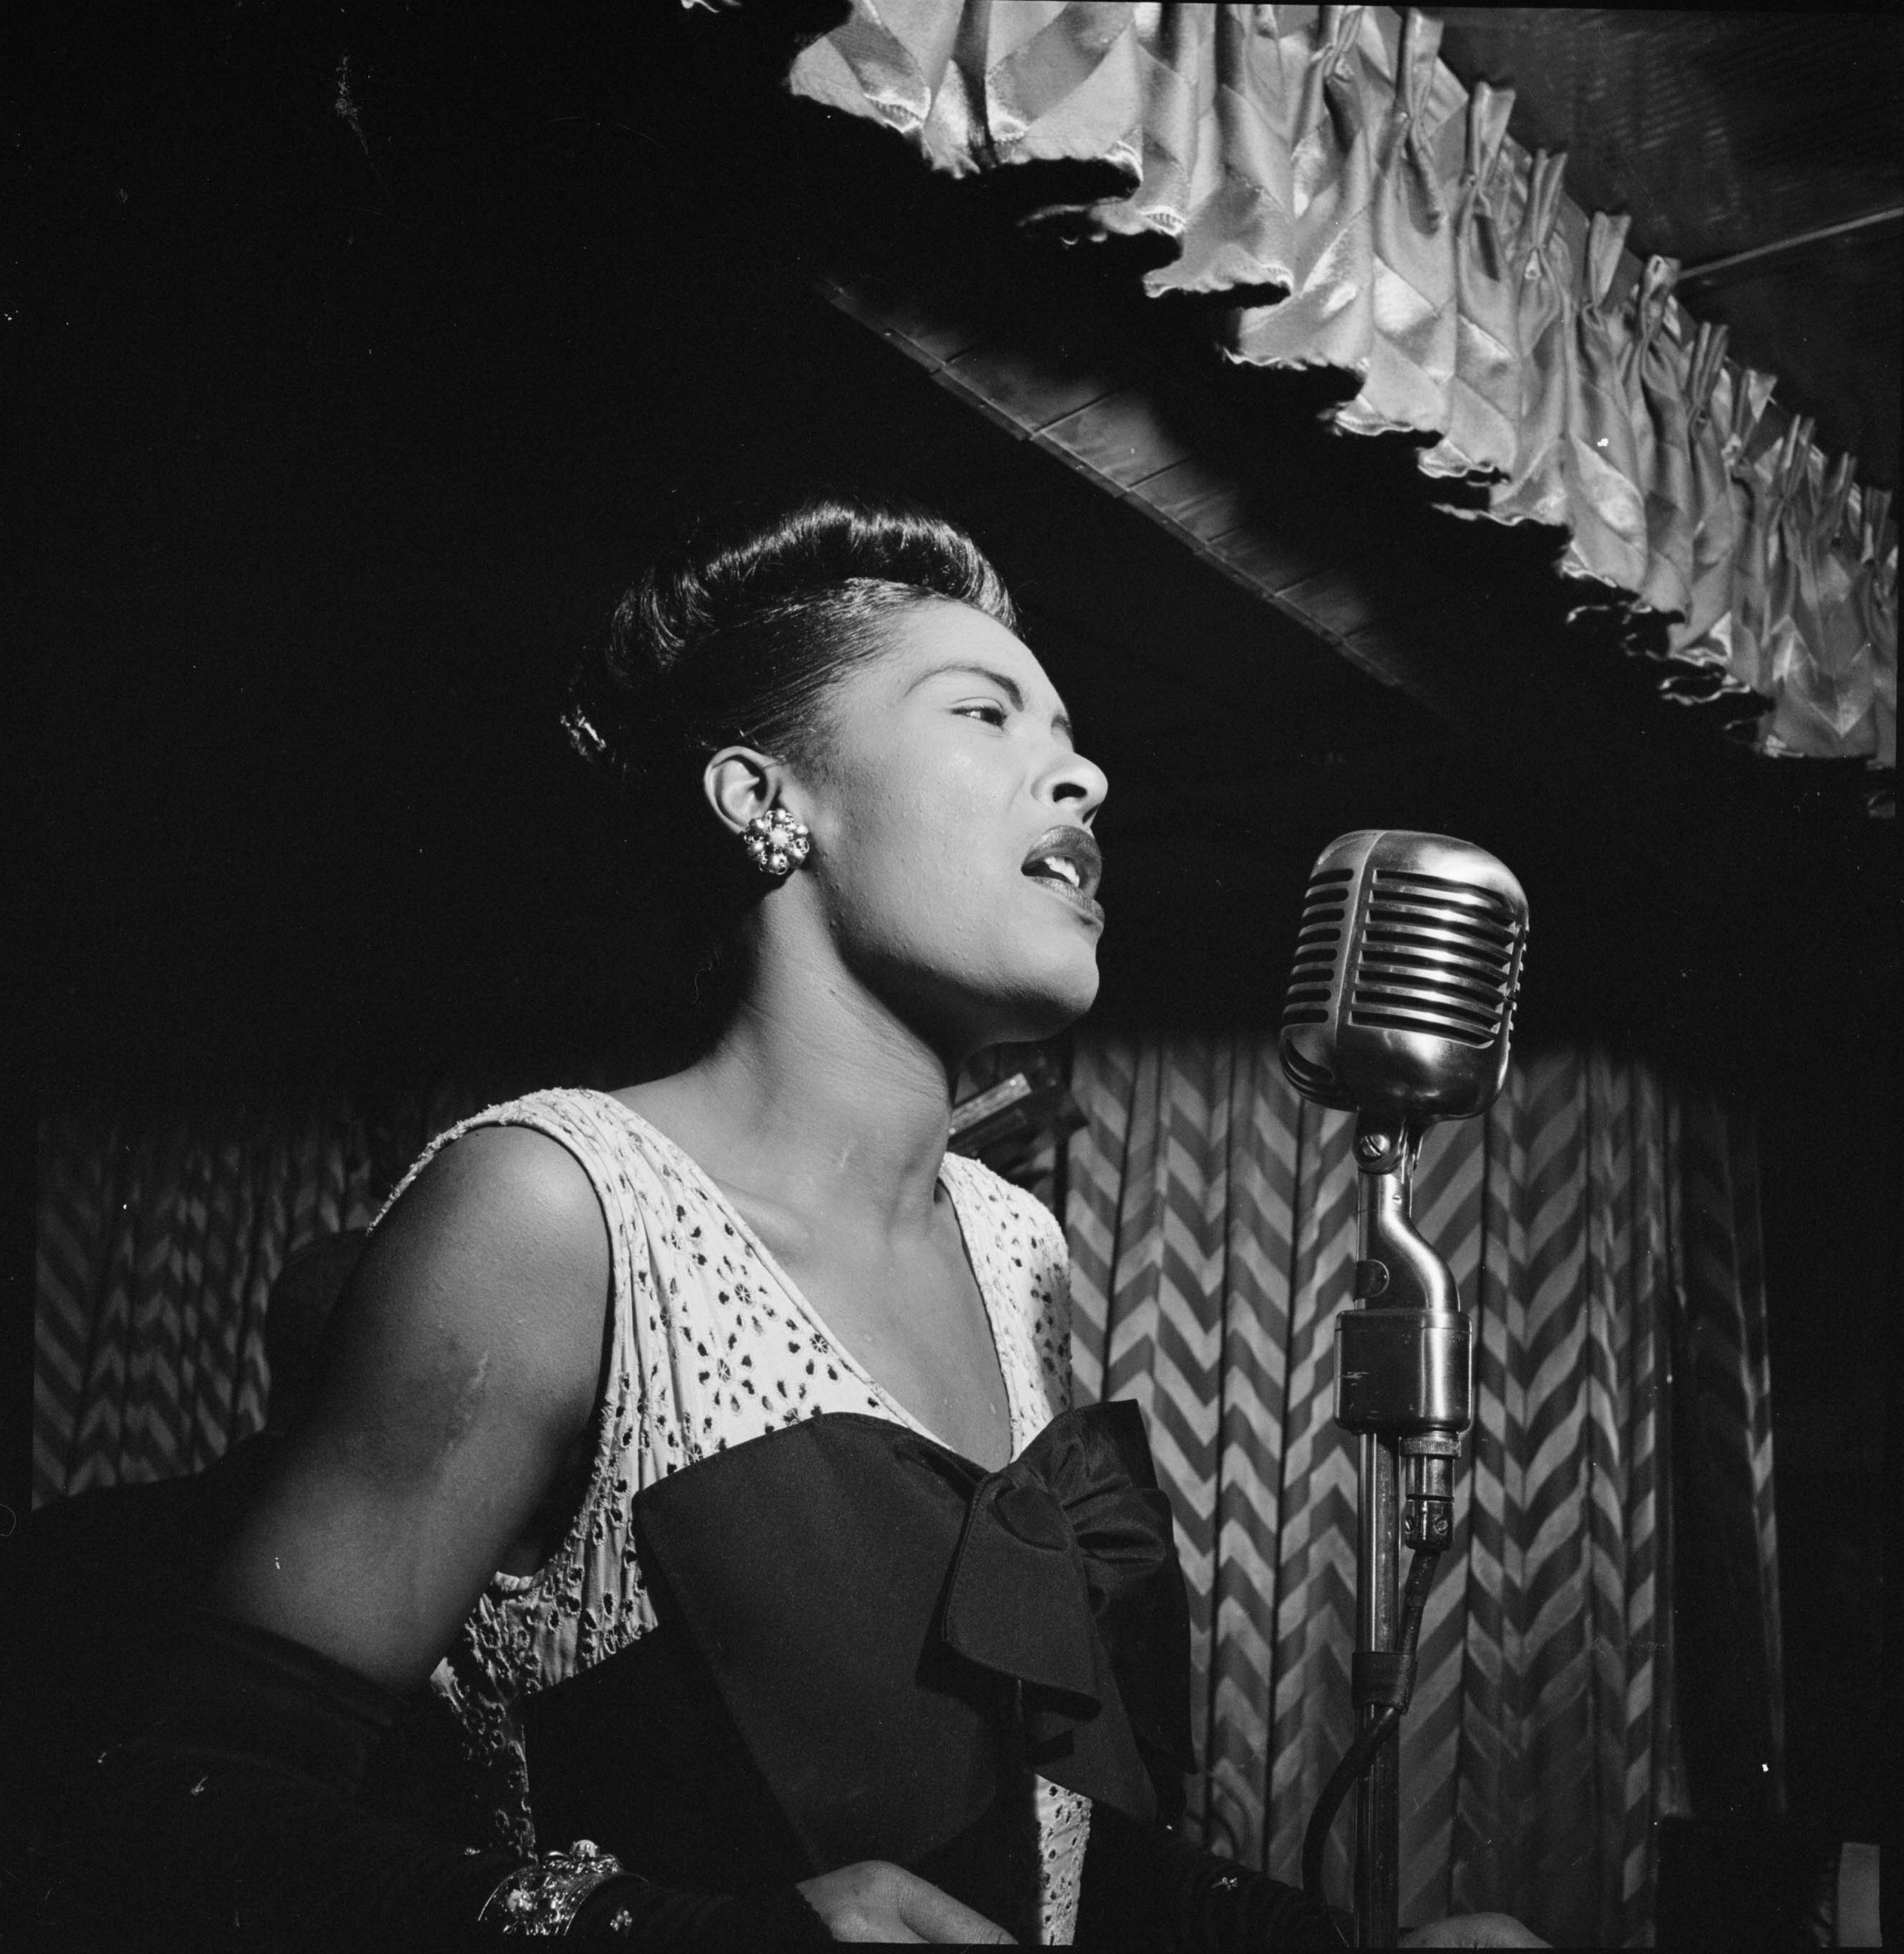 Billie Holiday (1915 - 1959) performing at the Club Downbeat in Manhattan. | Source: Getty Images